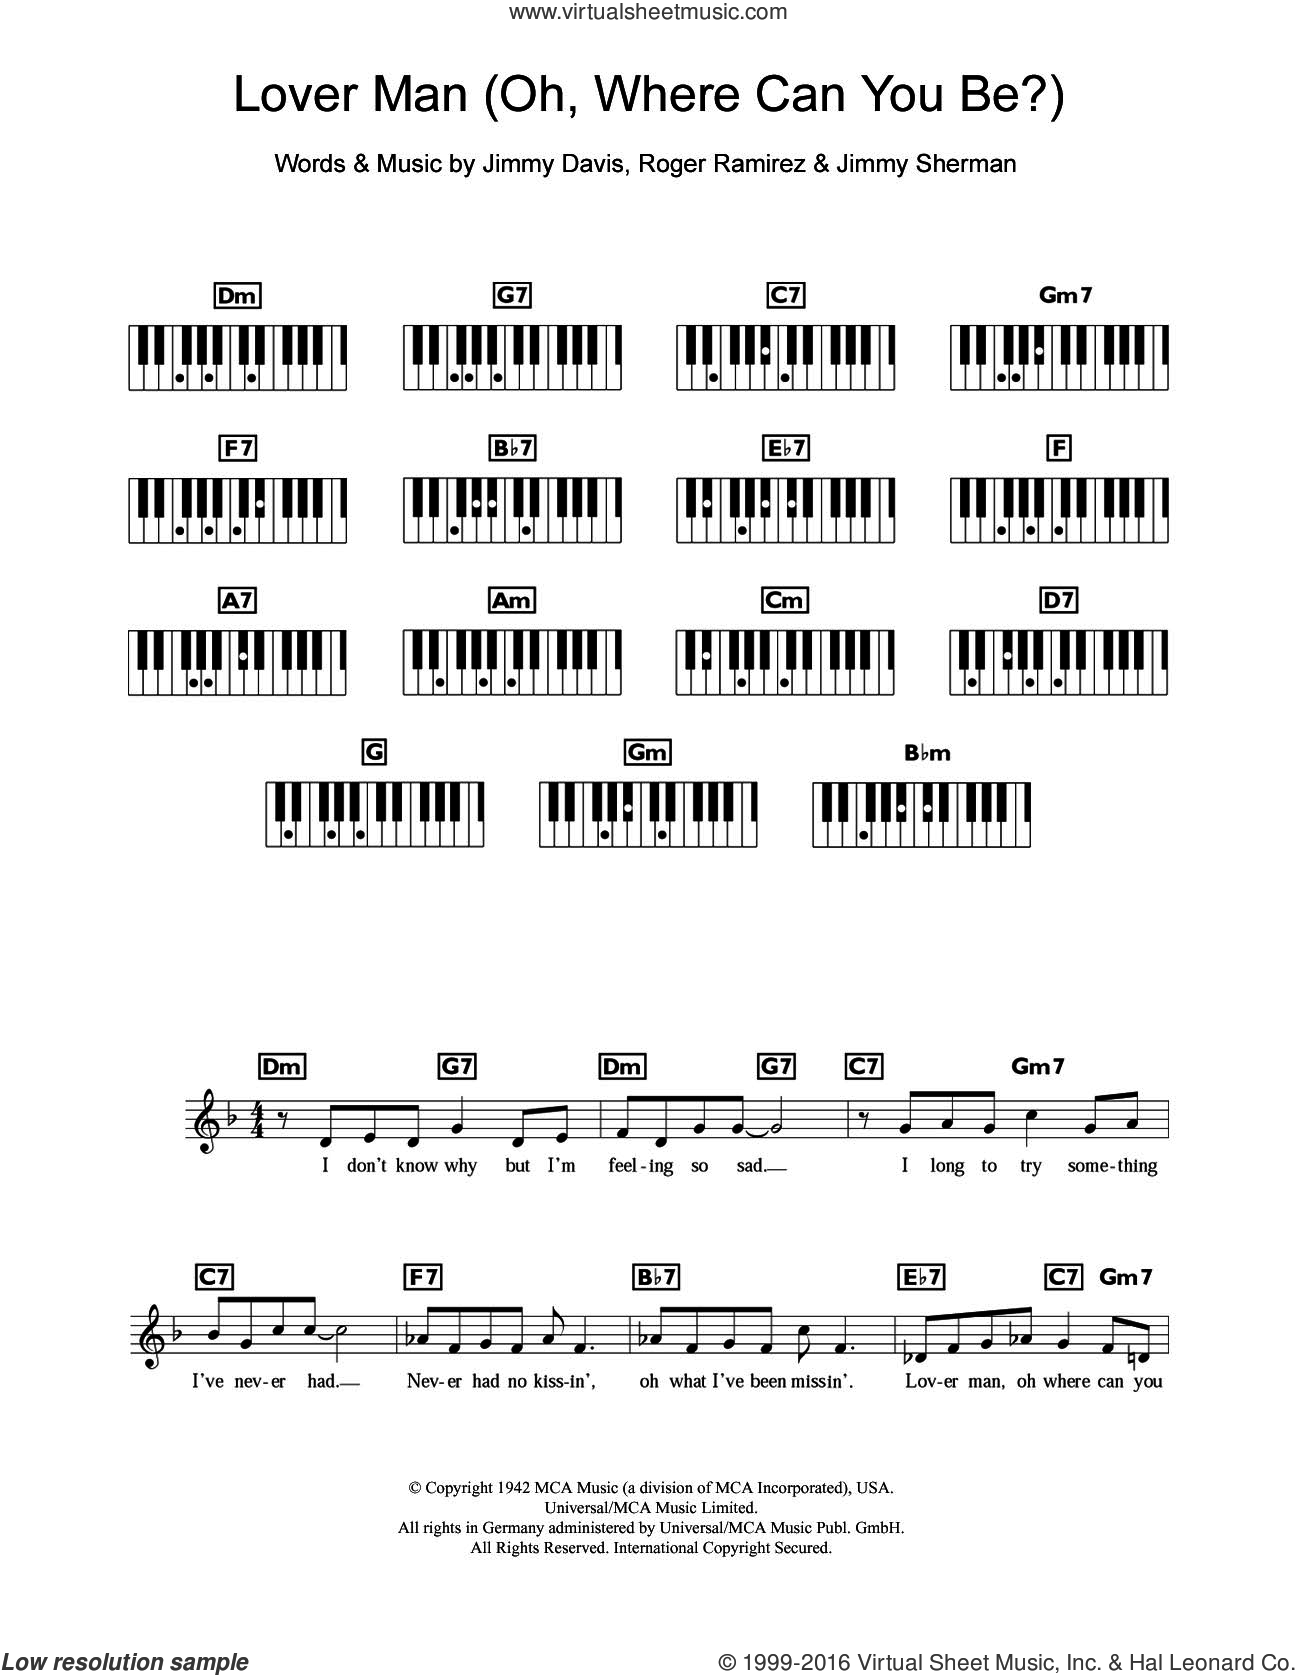 Lover Man (Oh, Where Can You Be) sheet music for piano solo (chords, lyrics, melody) by Roger Ramirez